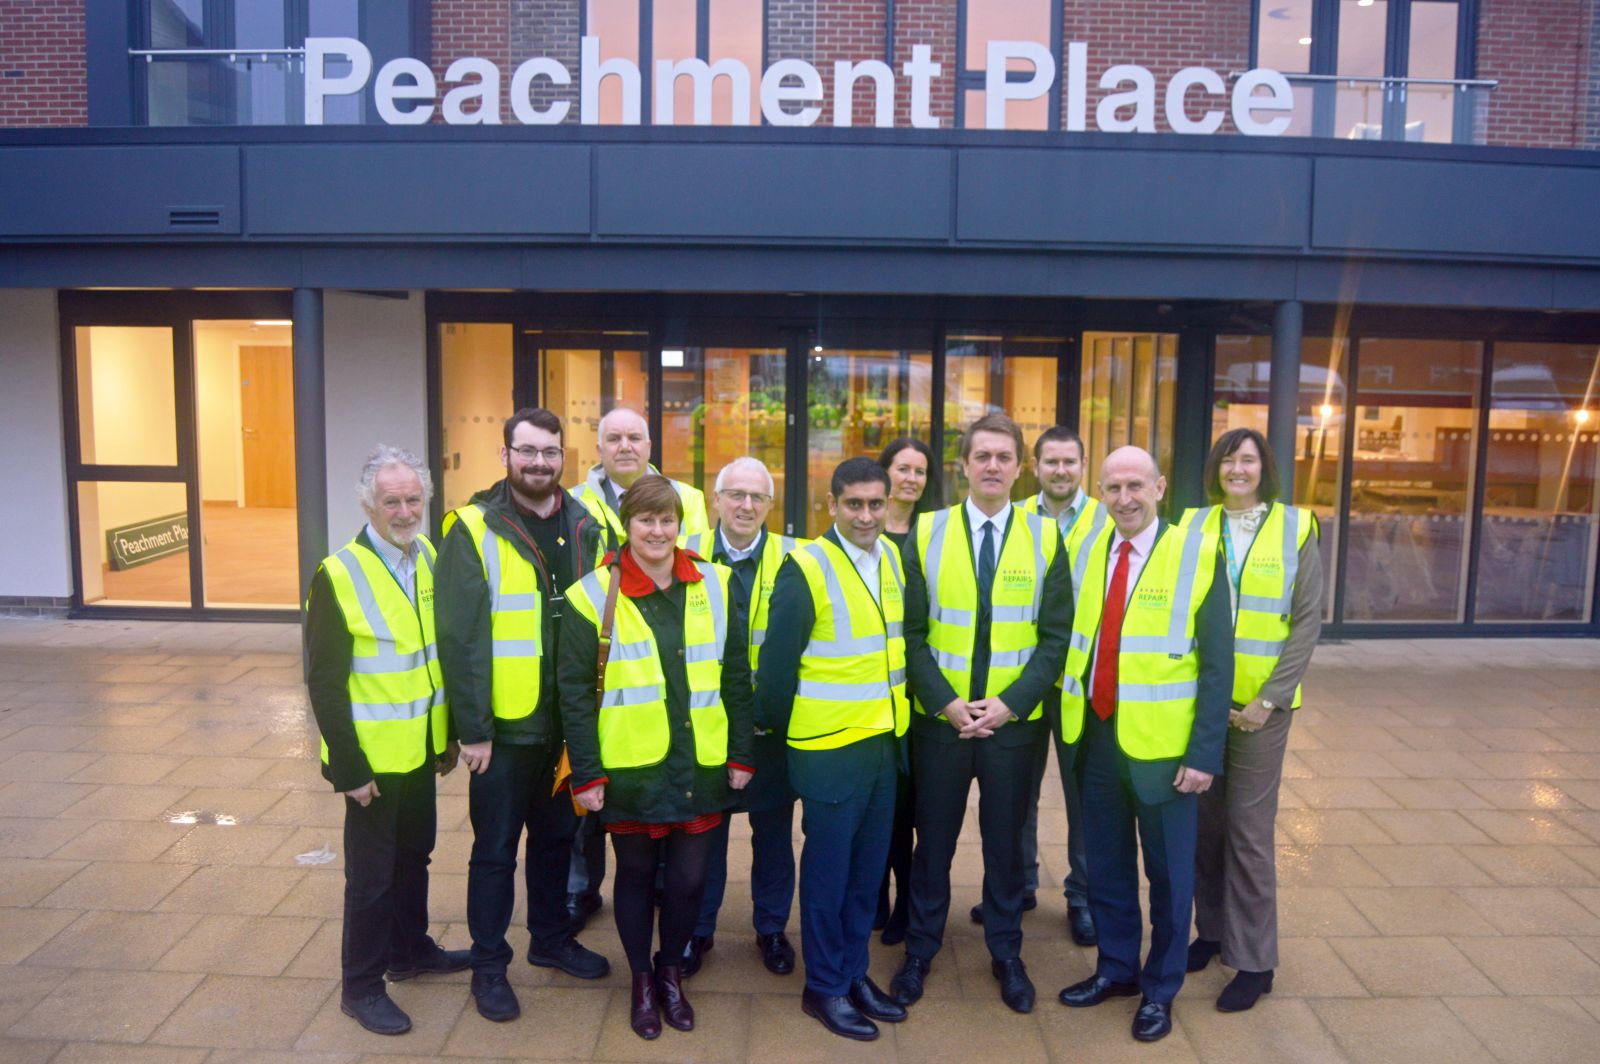 Visitors to Peachment Place, including Bury Council leader Rishi Shori, Six Town Housing CEO Sharon McCambridge, James Frith MP and John Healey Shadow